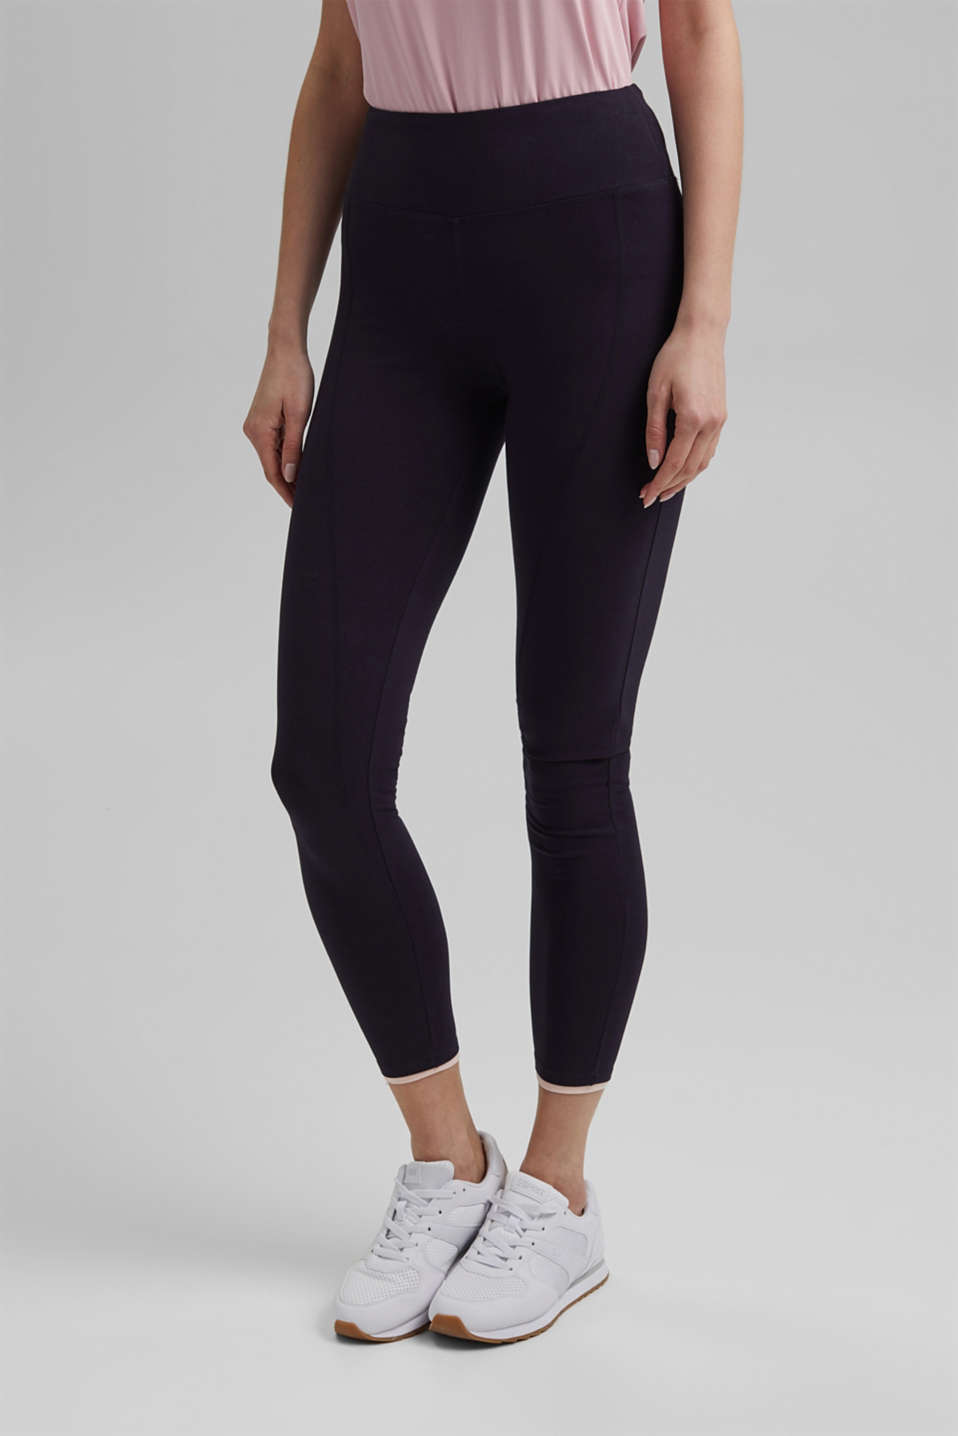 Esprit - Jersey leggings made of organic cotton